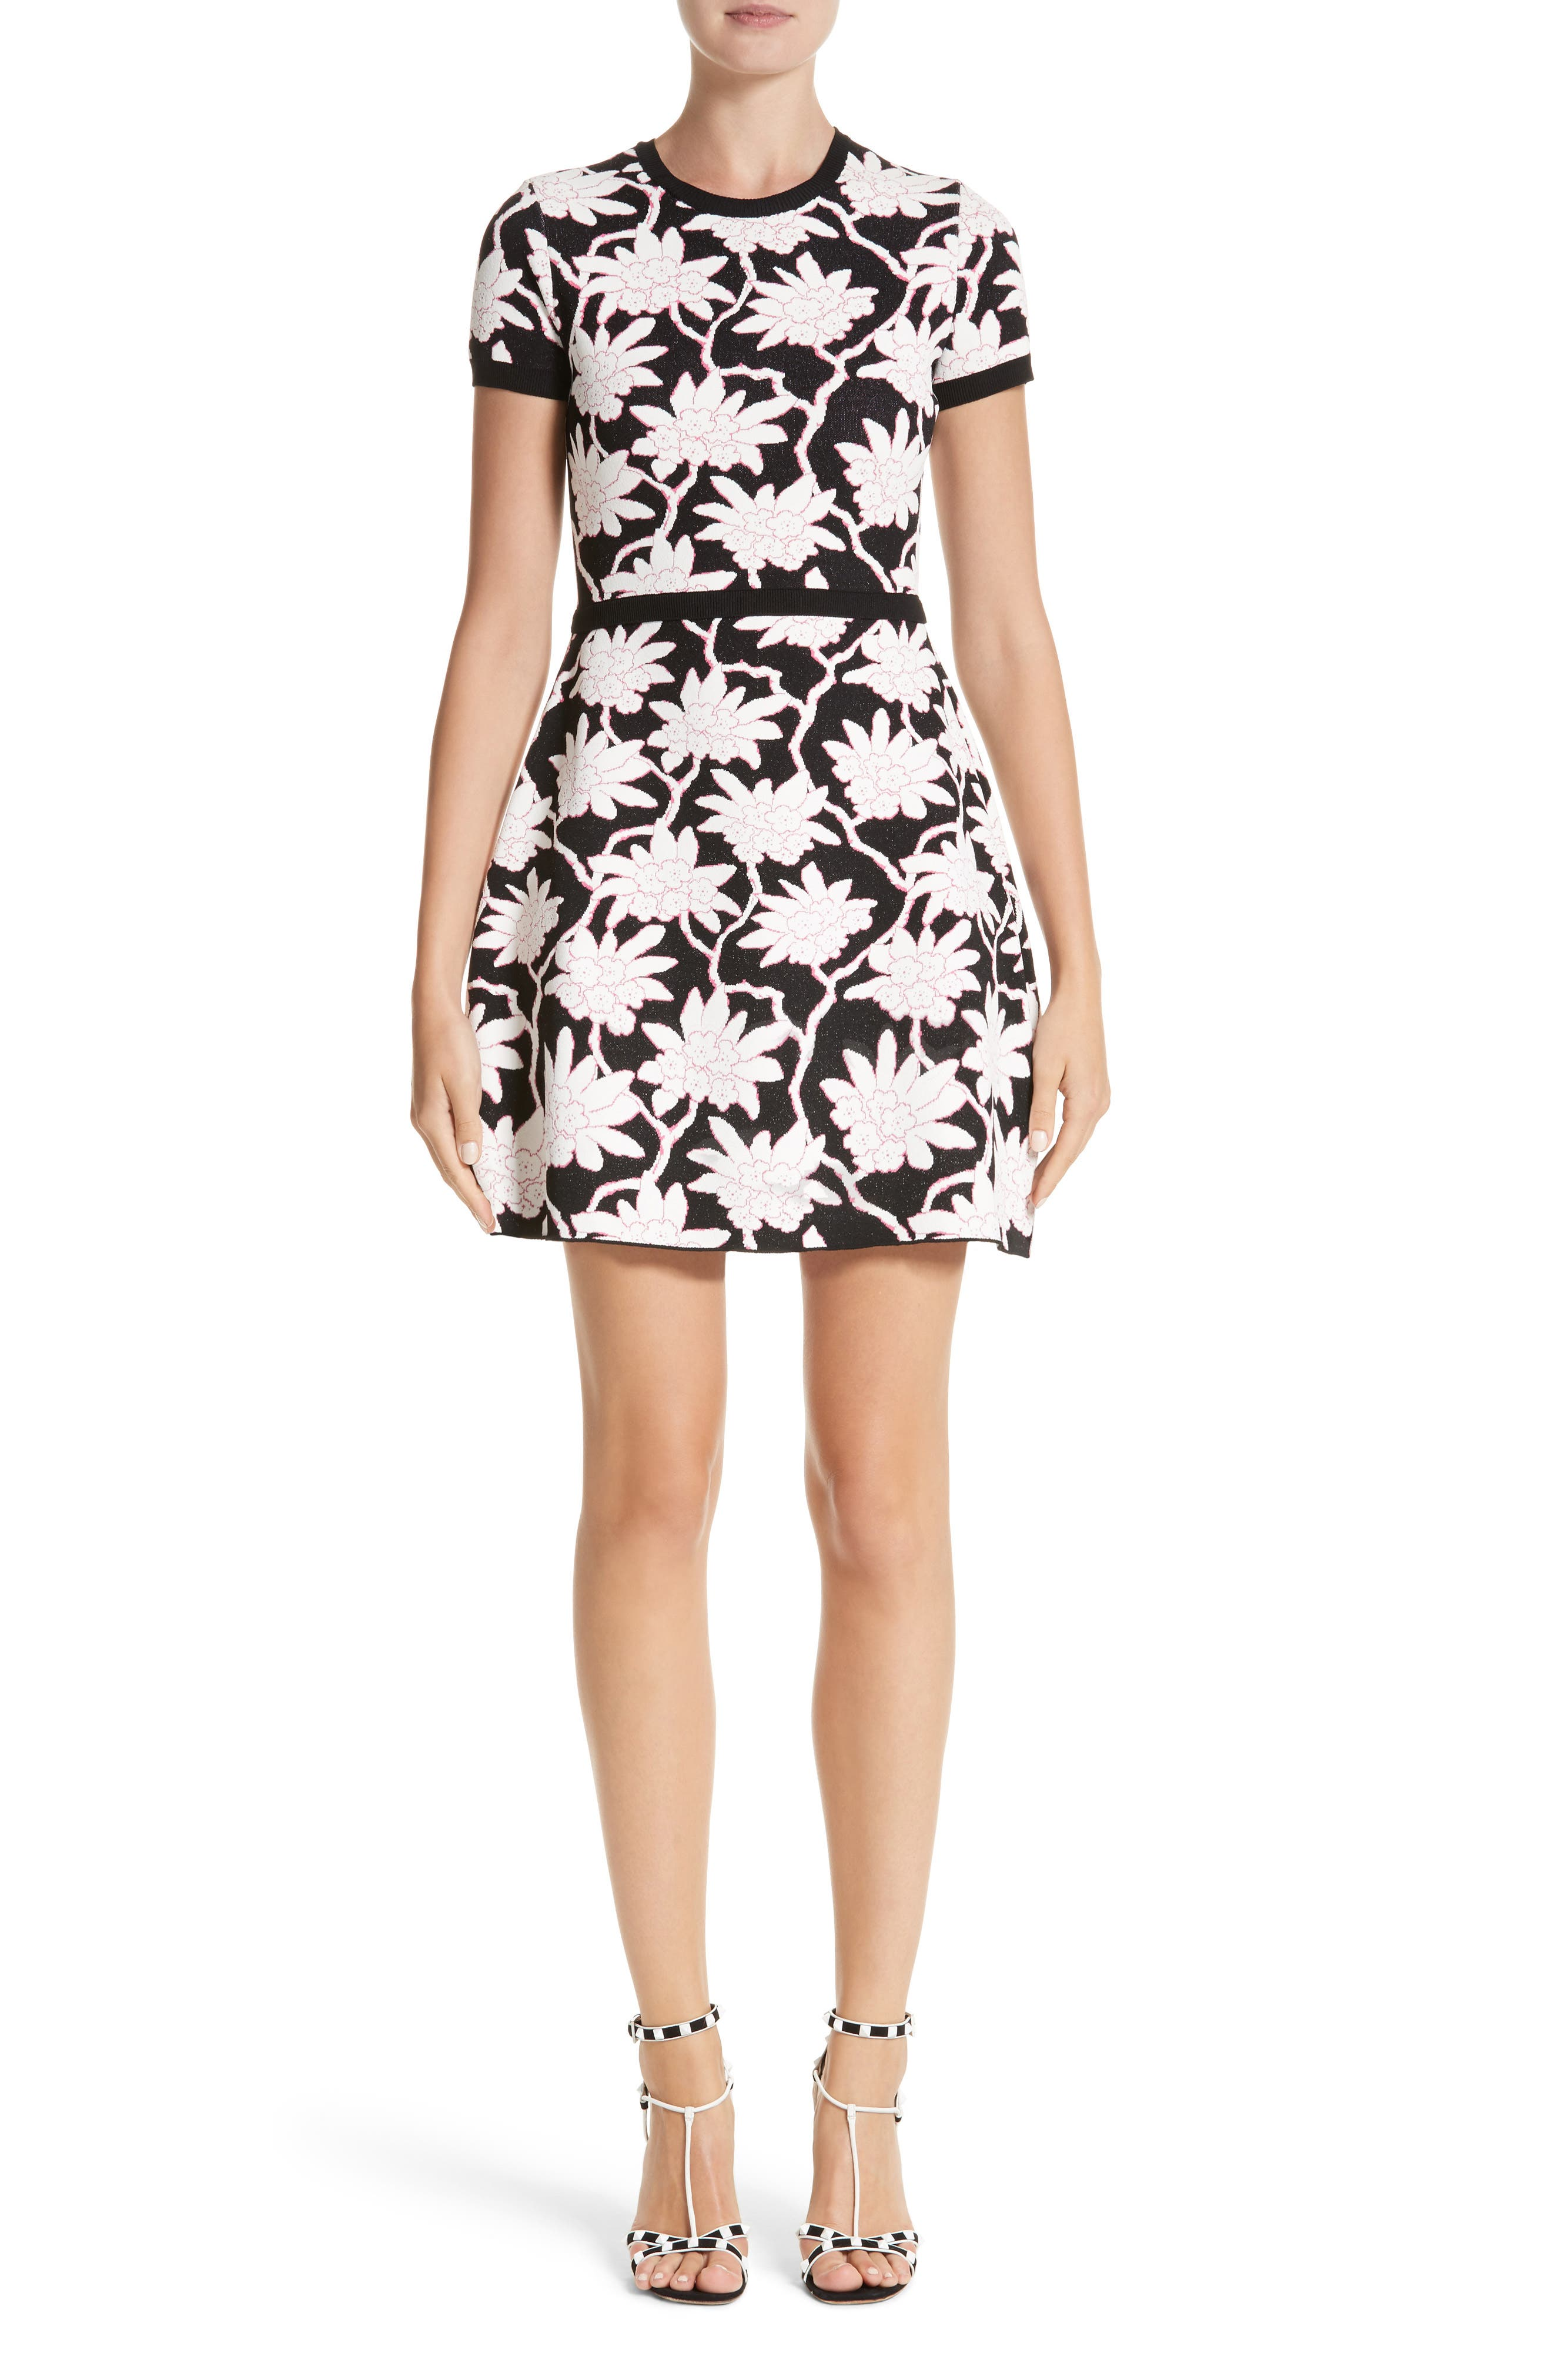 Rhododendron Jacquard Dress,                         Main,                         color, 001